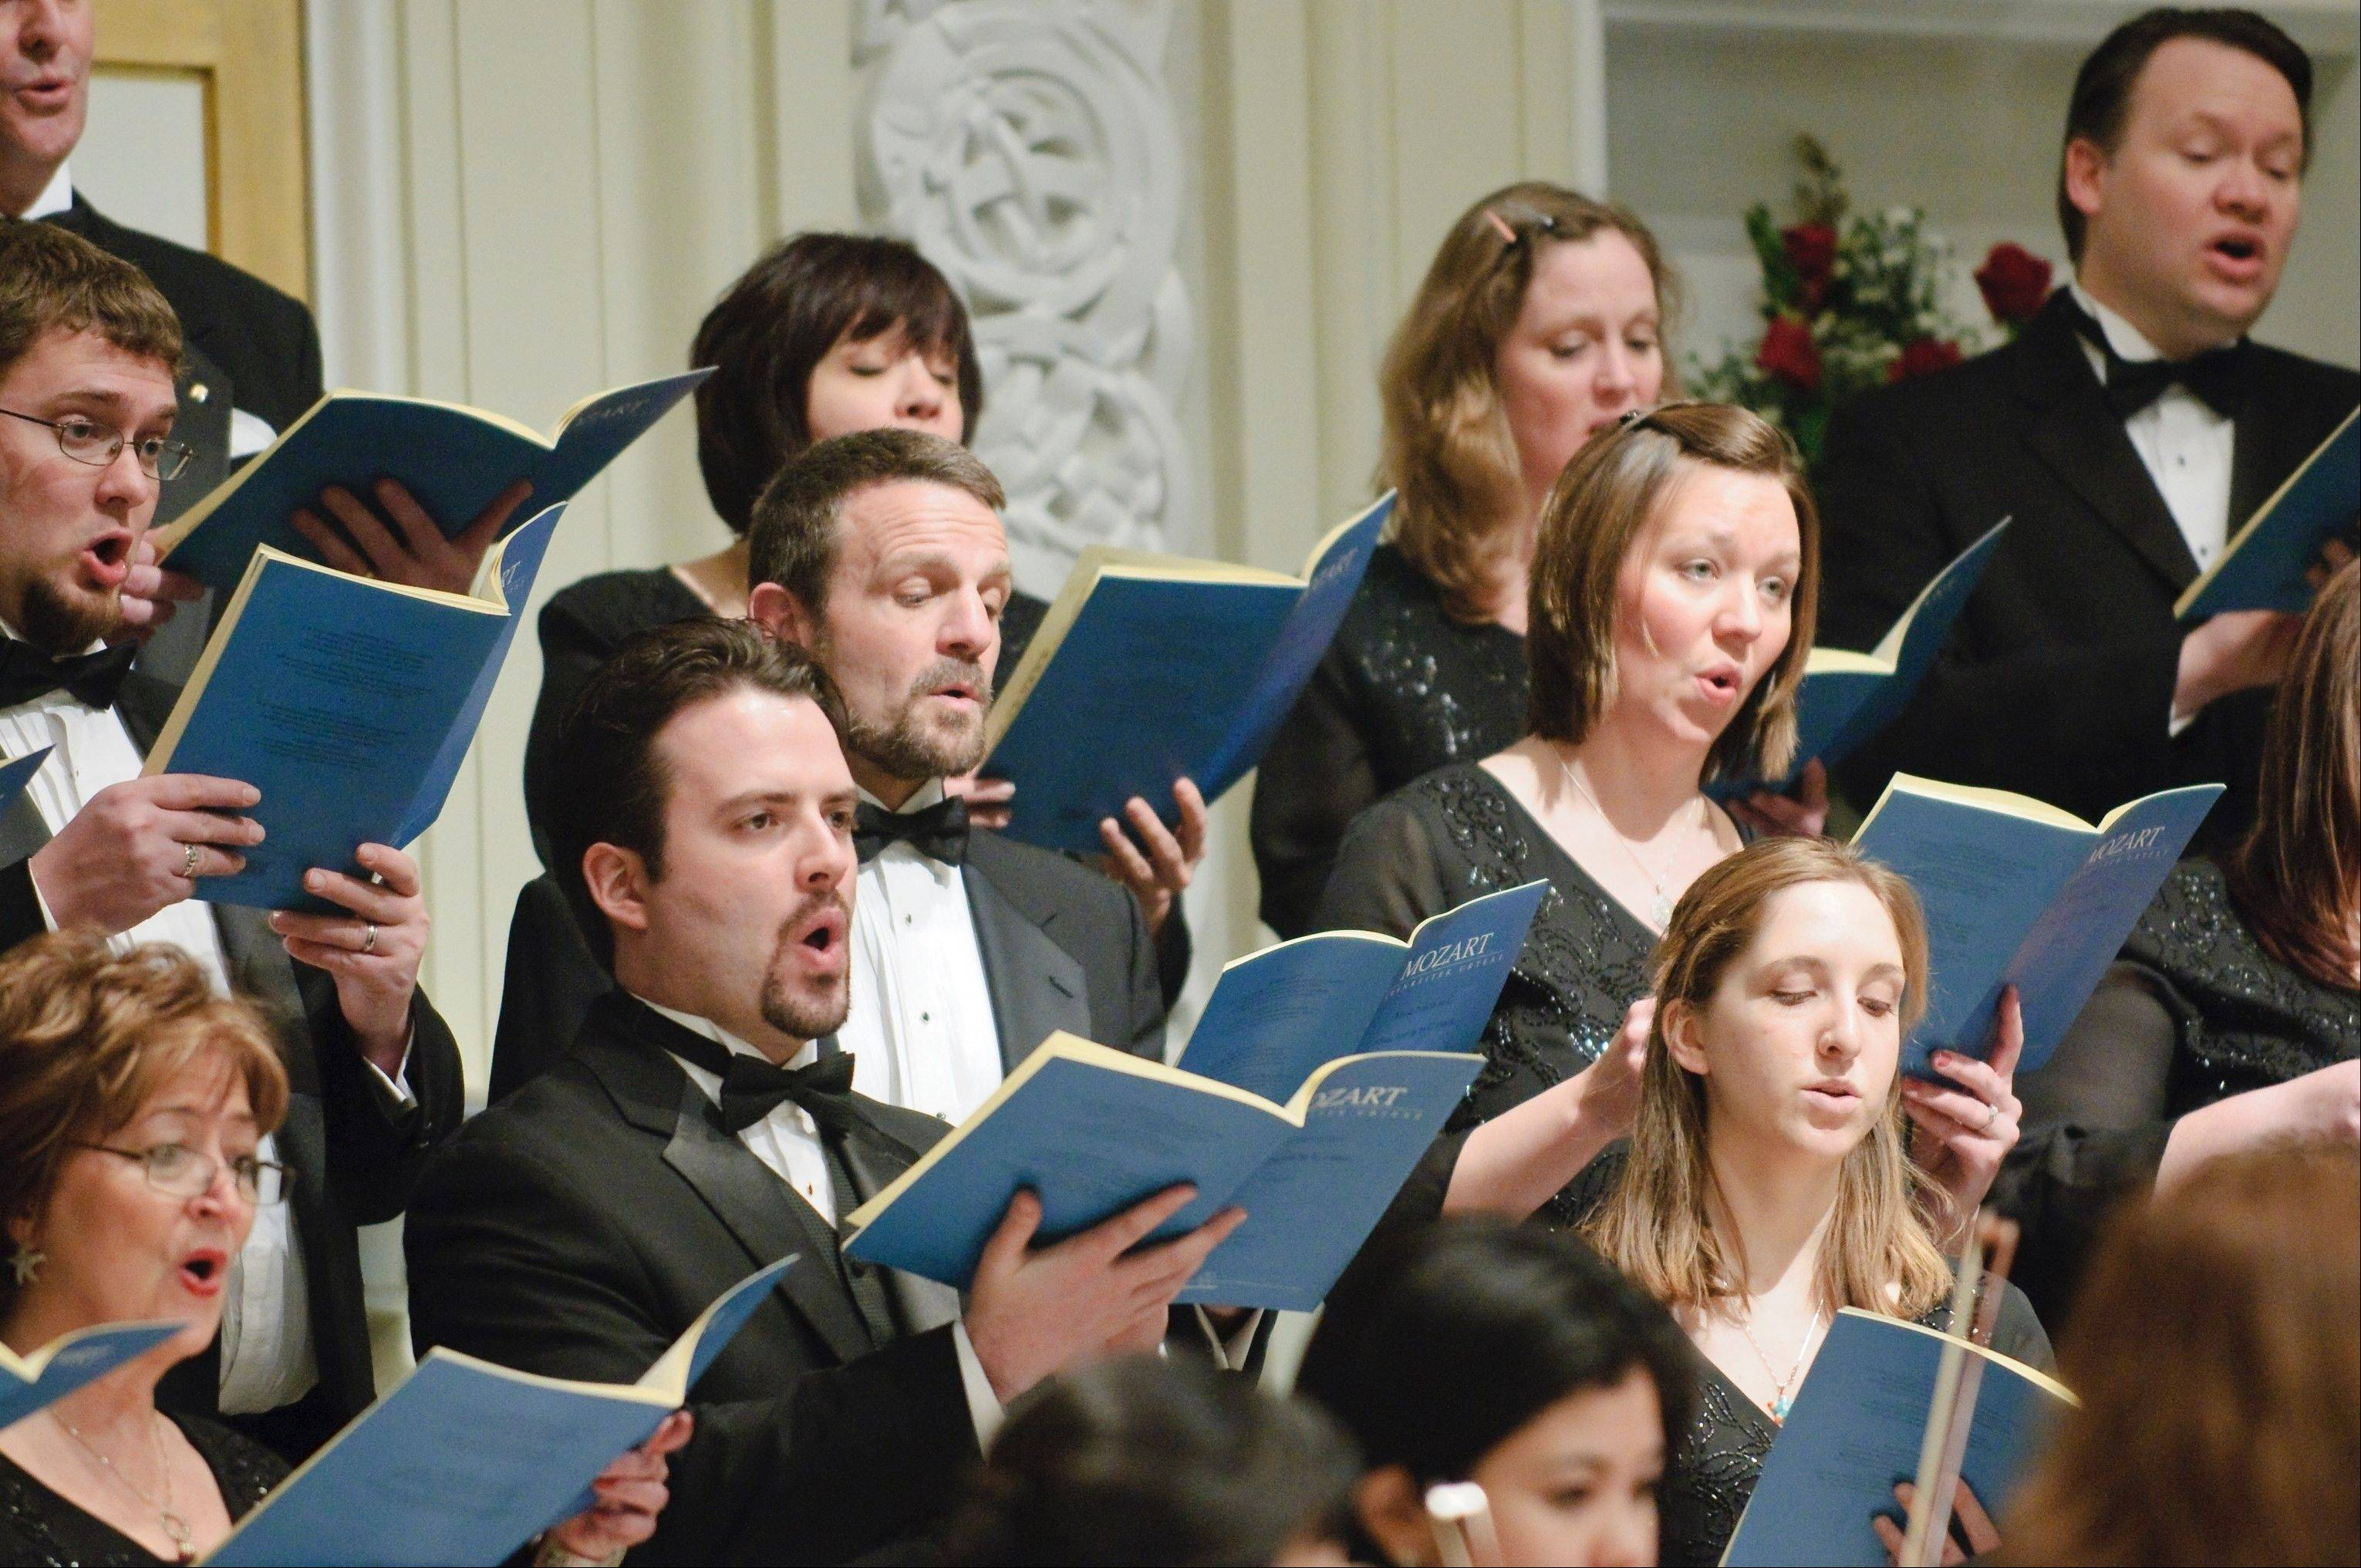 The St. Charles Singers will launch its 30th season this weekend with a concert titled �Luminescence.� Performances are set for Saturday, Oct. 5 in St. Charles and Sunday, Oct. 6 in Wheaton.